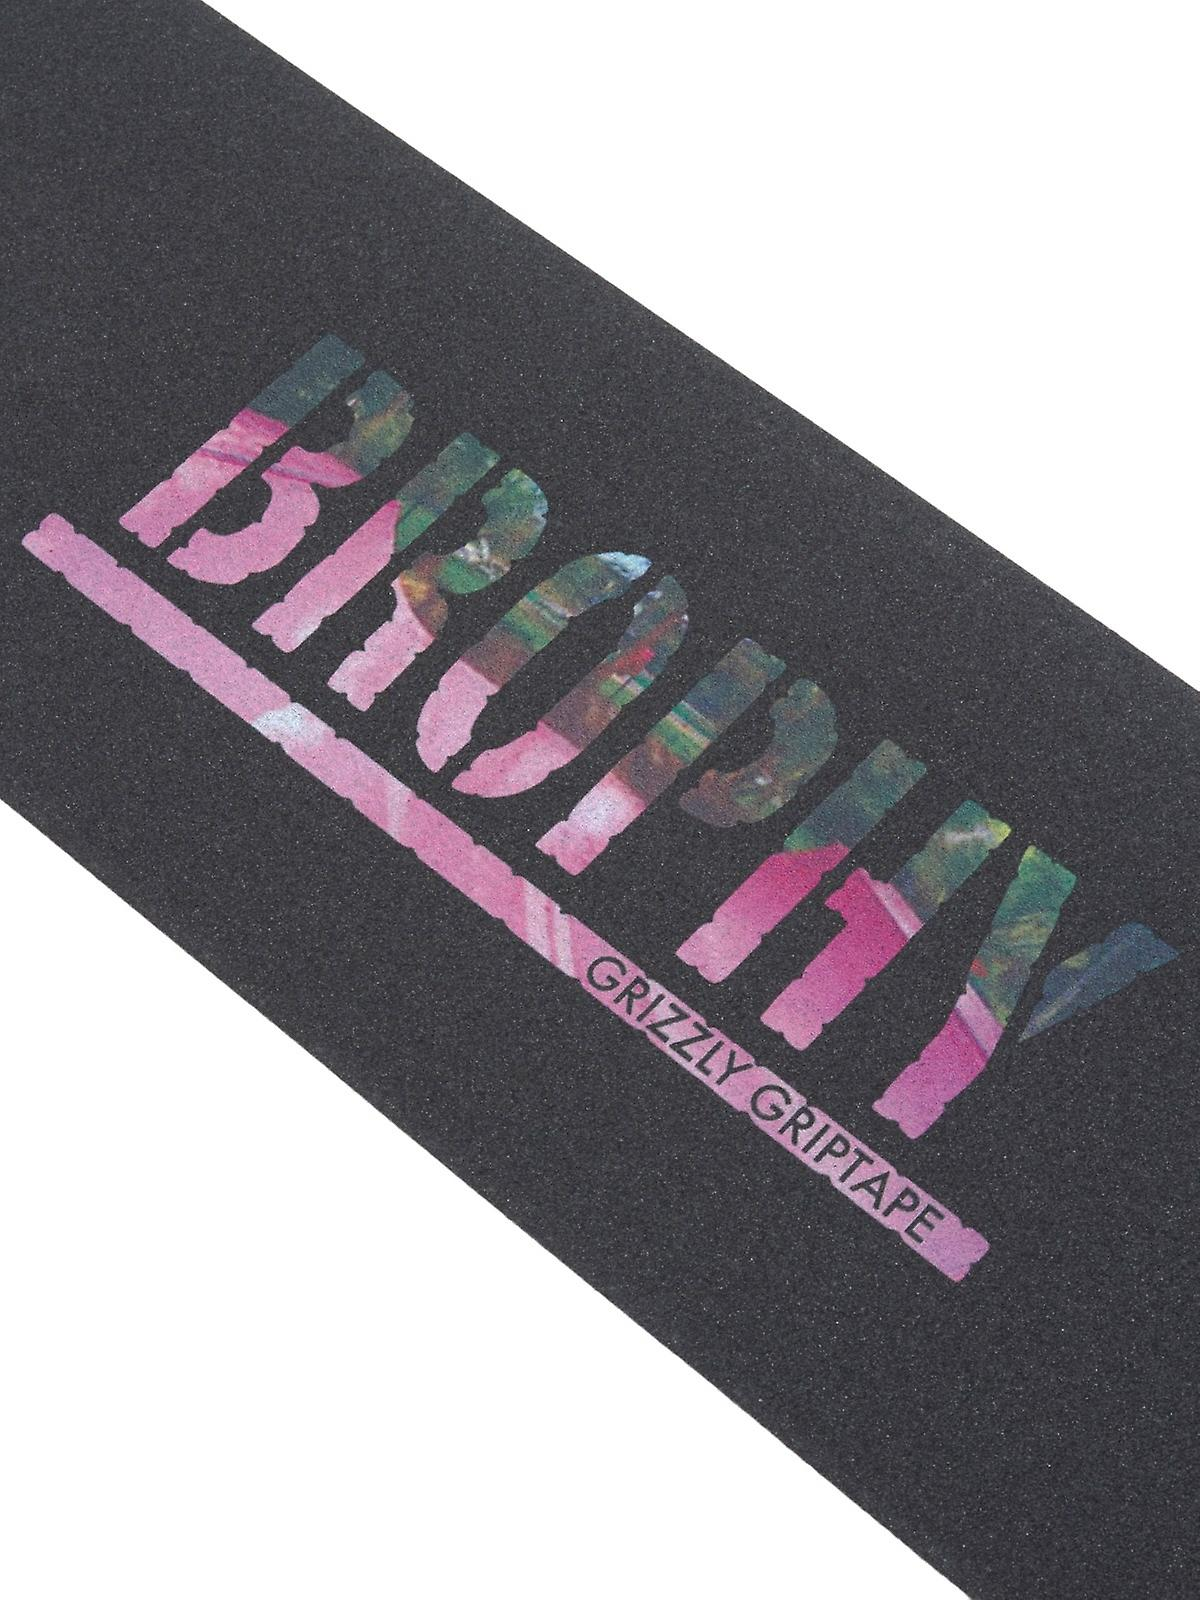 Grizzly Black Andrew Brophy Skateboard Grip Tape